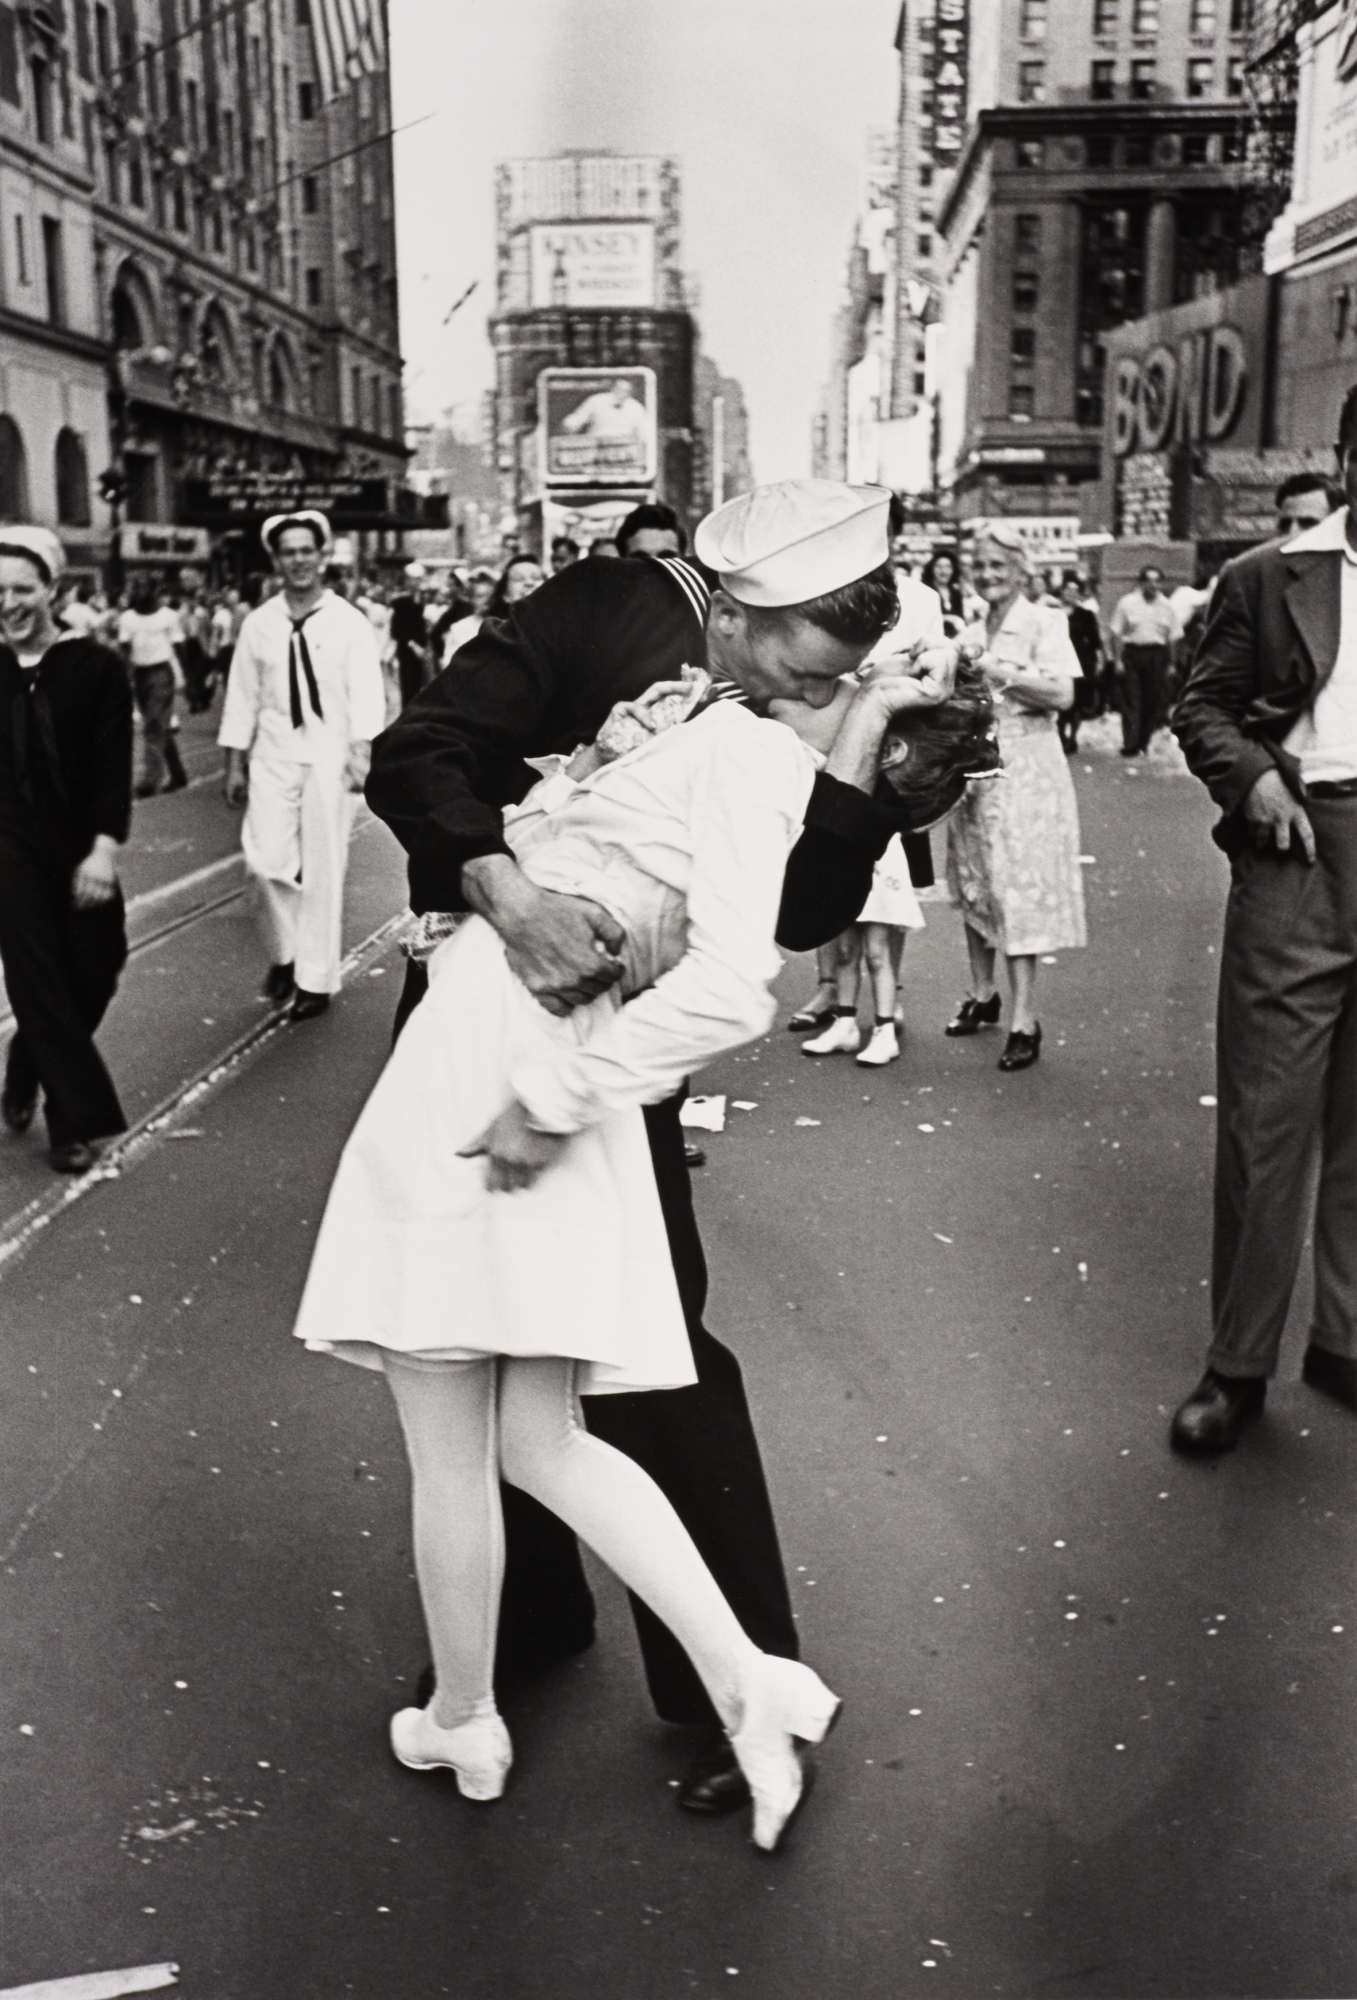 Top 10 World's most famous photos - Editors Choice